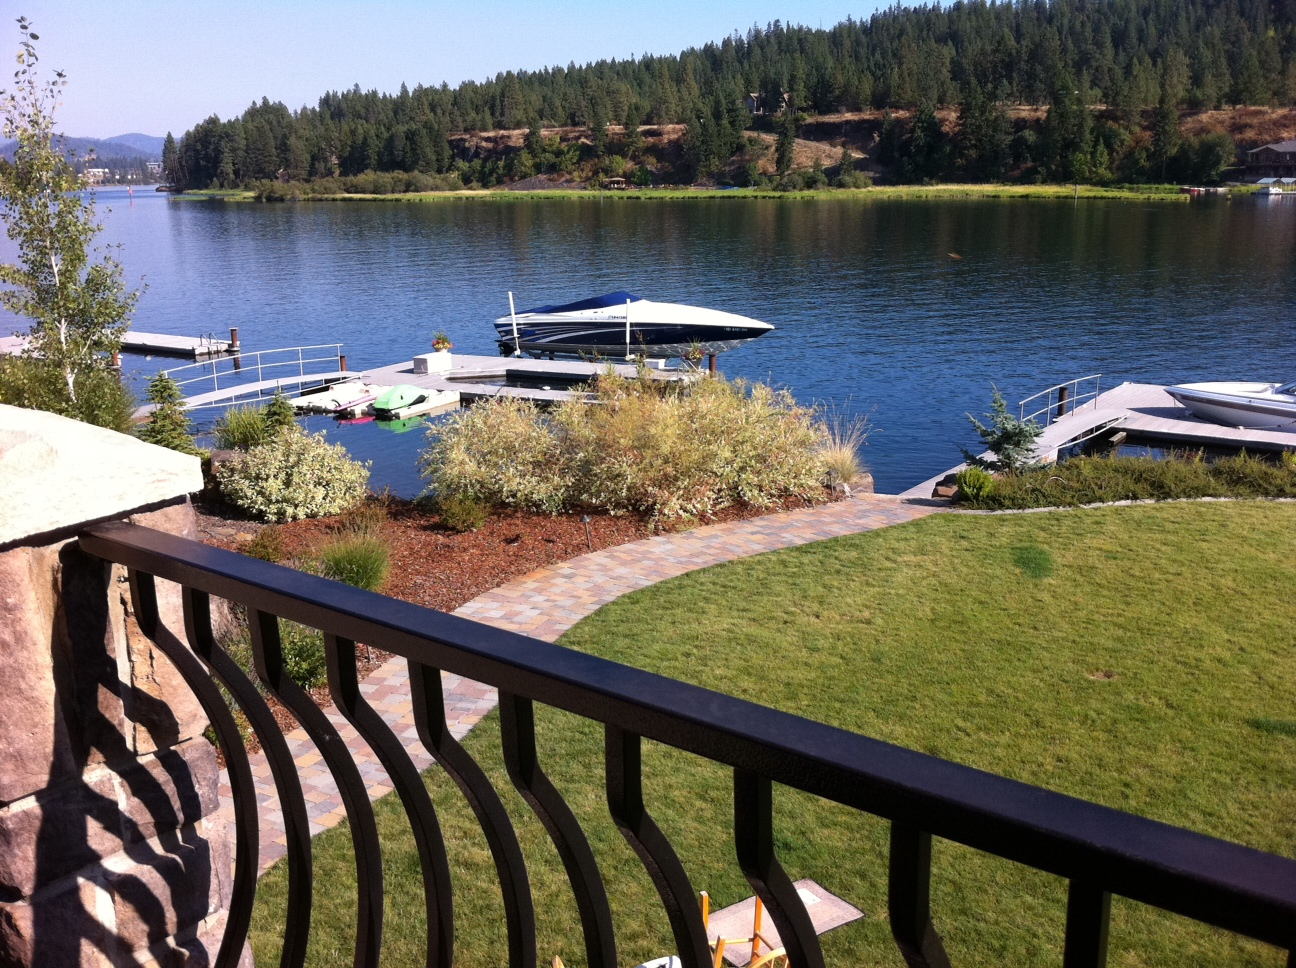 Waterfront Homes for sale in Coeur d'Alene ID